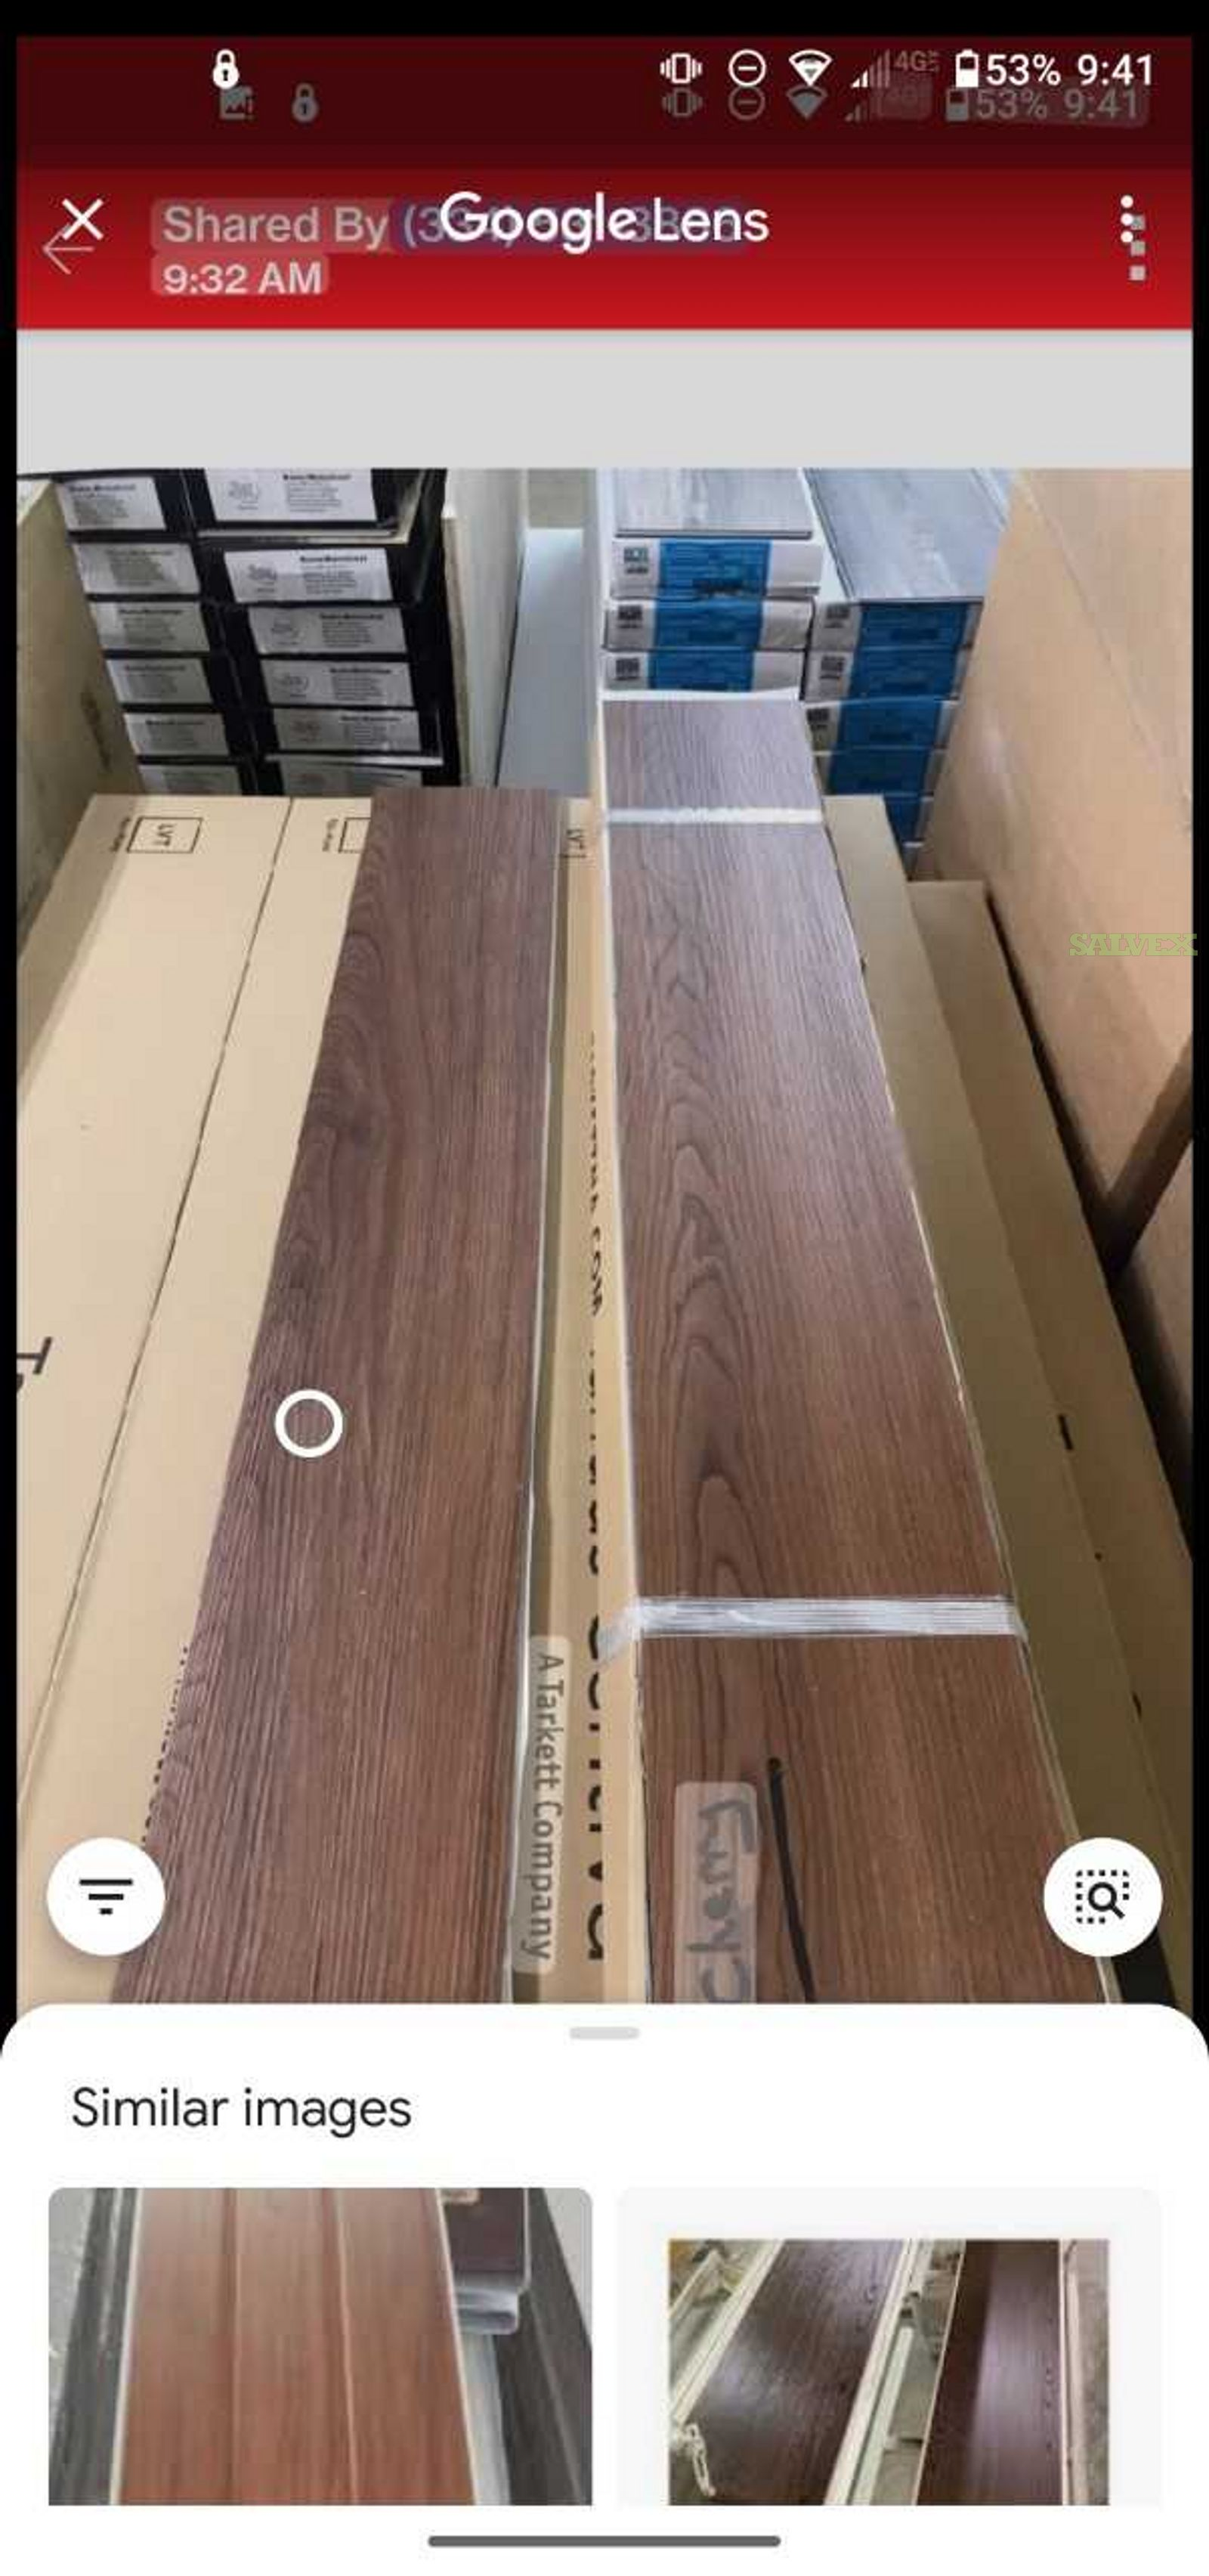 Tarkett Loose Lay LVP Adapt SSP 6 x 36 plank size 4.4 millimeter thick 20 mil commercial wear layer